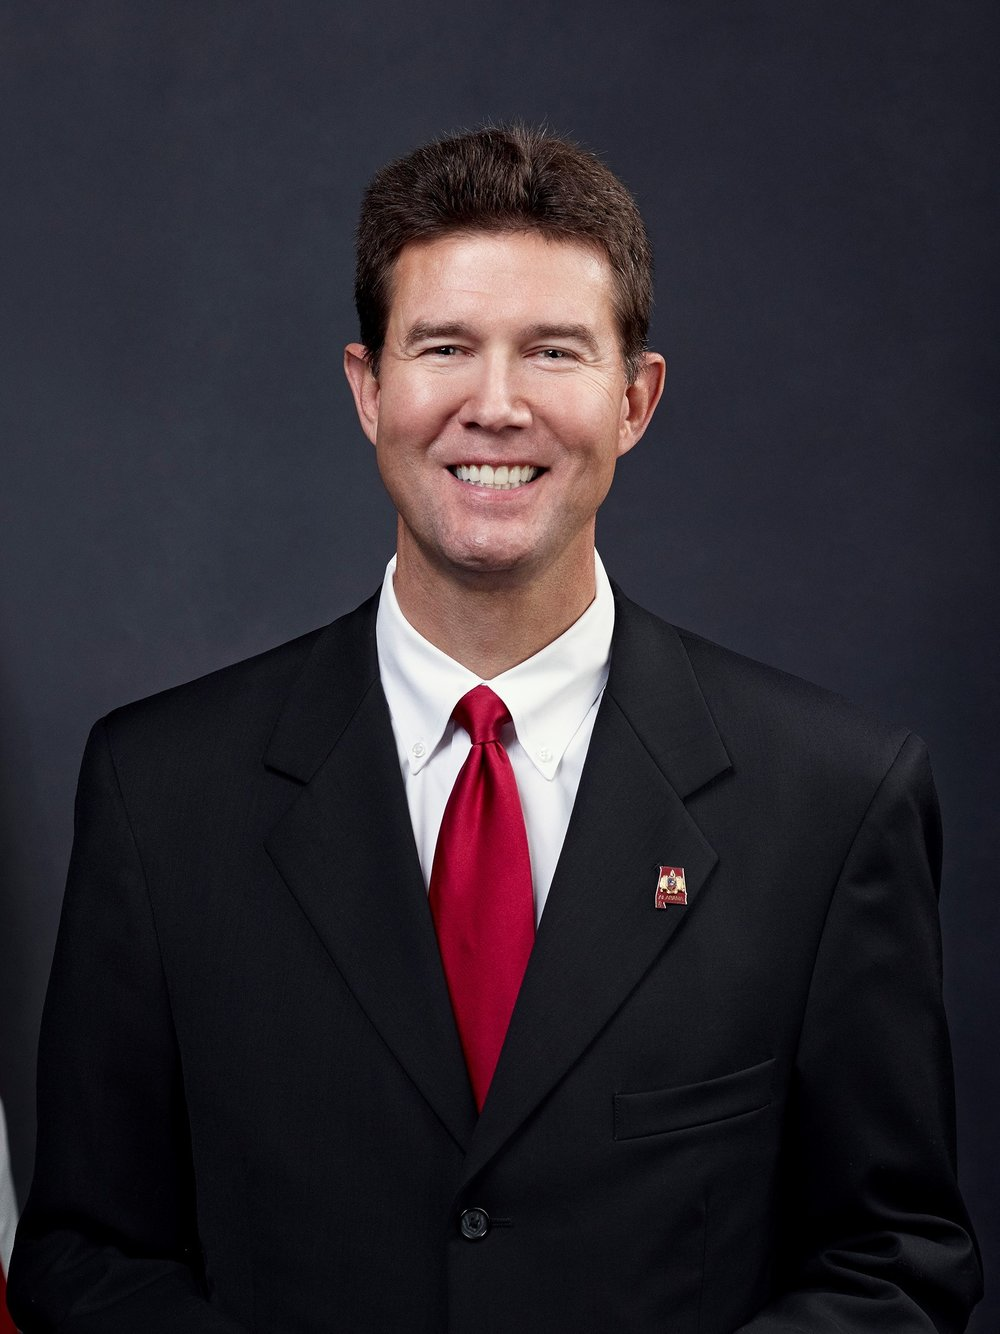 HON. JOHN MERRILL - SECRETARY OF STATE, ALABAMA